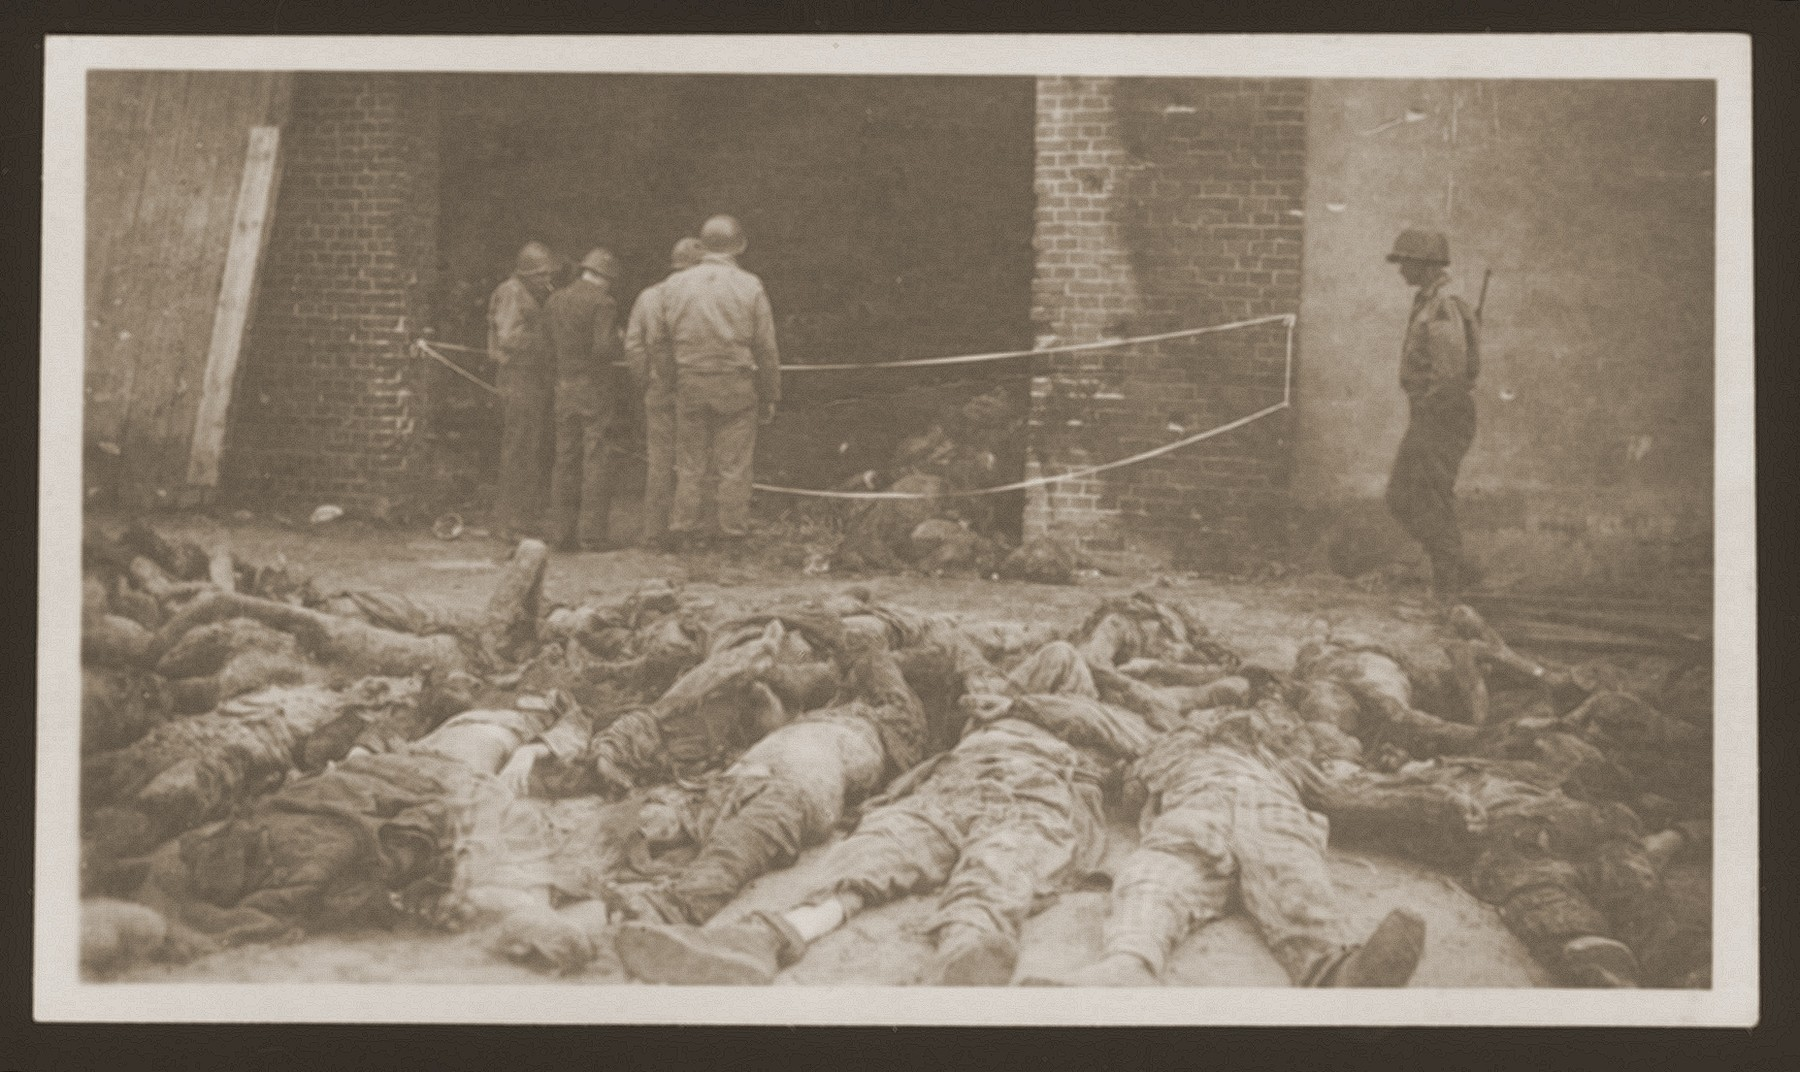 American soldiers look at the charred bodies of prisoners burned alive by the SS in a barn outside of Gardelegen.  In the foreground lie bodies already removed from the barn.